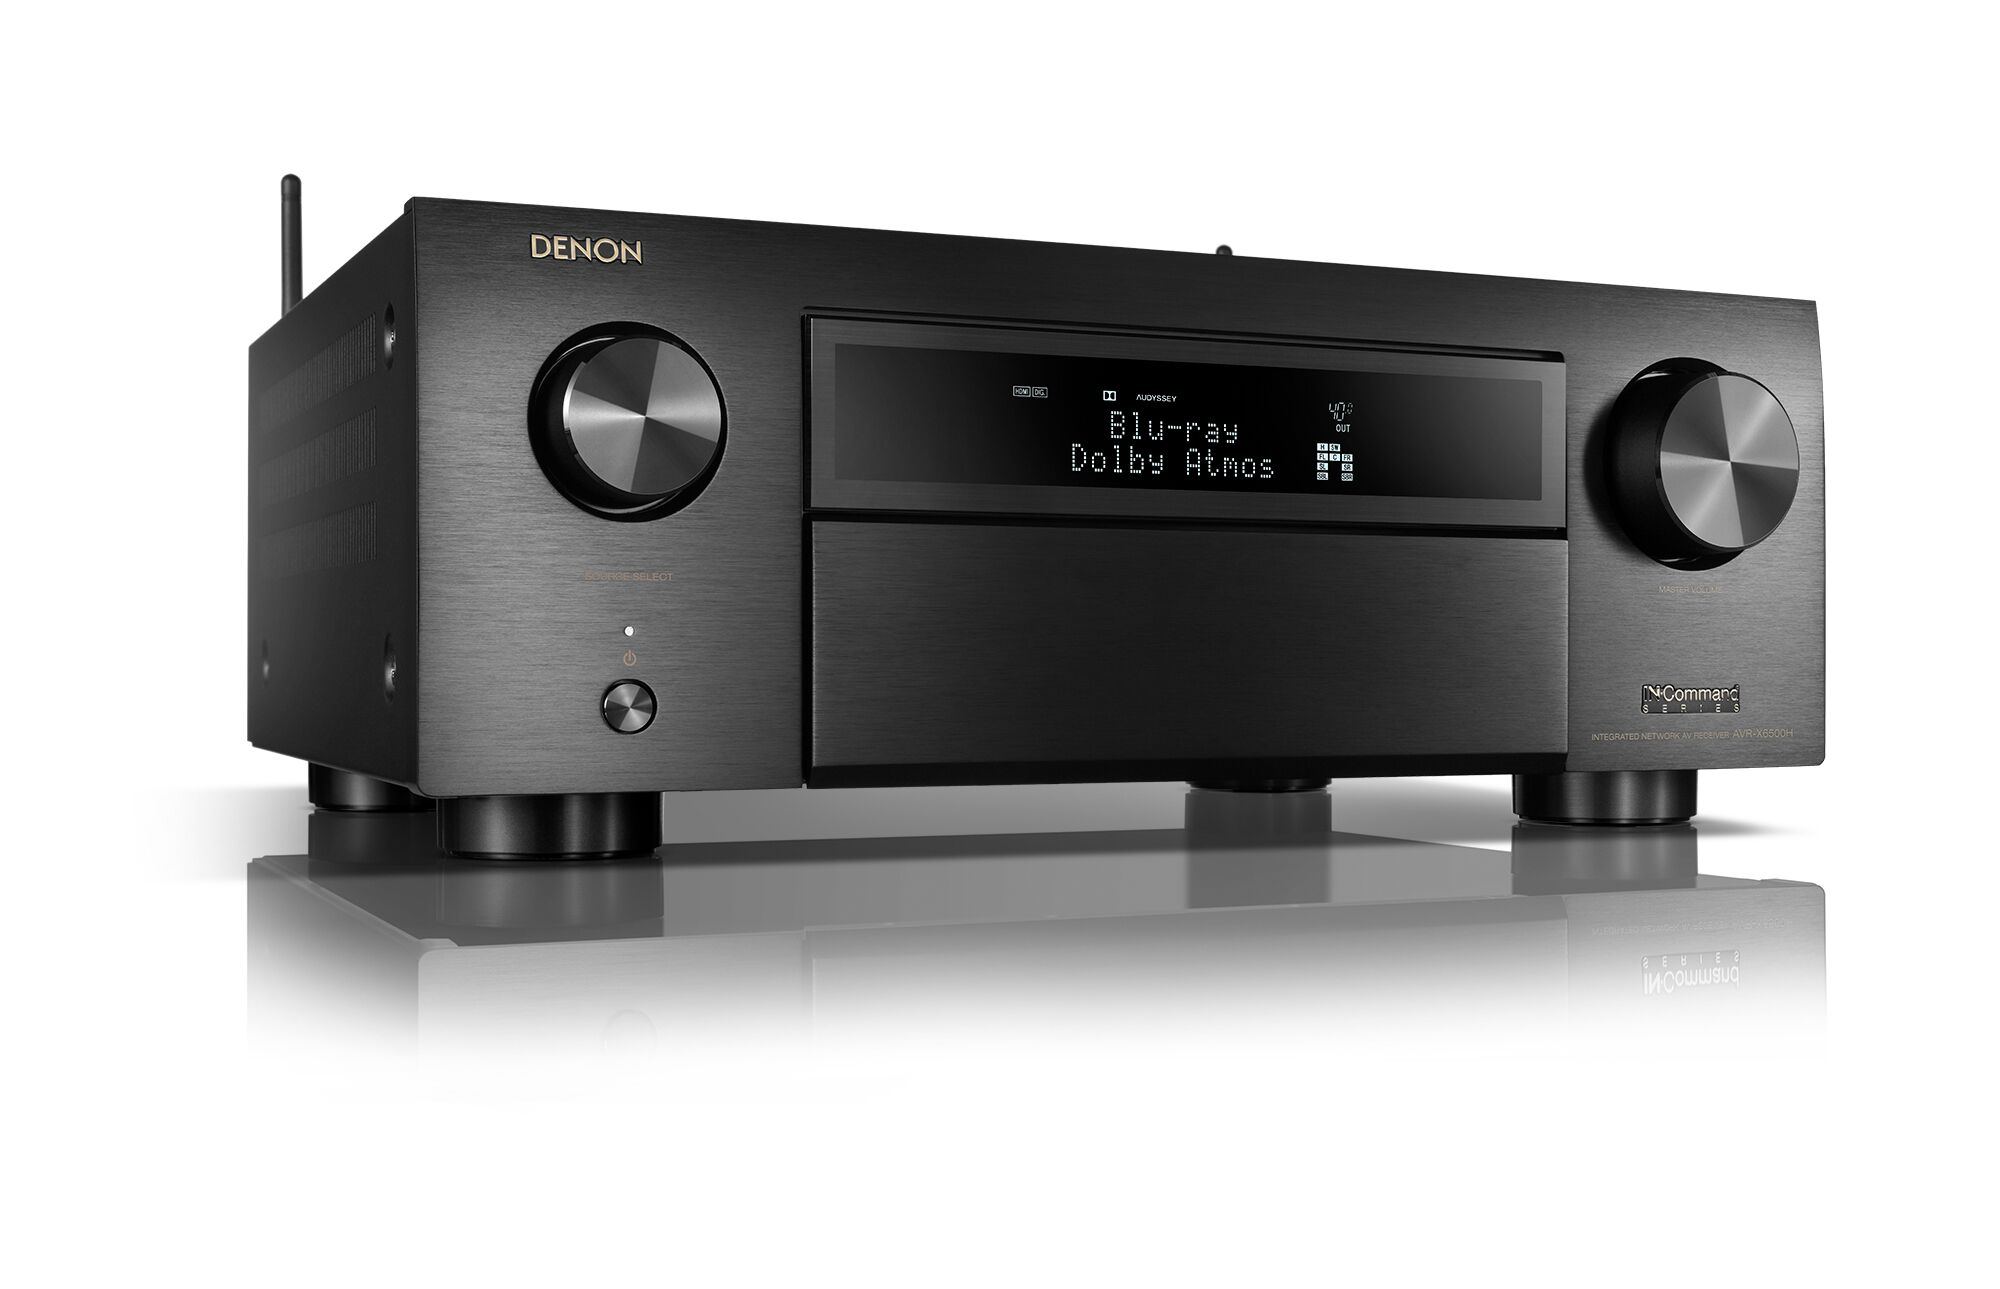 Denon AVR-X6500H 11.2 Channel 4K Reciever with 3D Audio and Amazon Alexa Voice Control by Denon